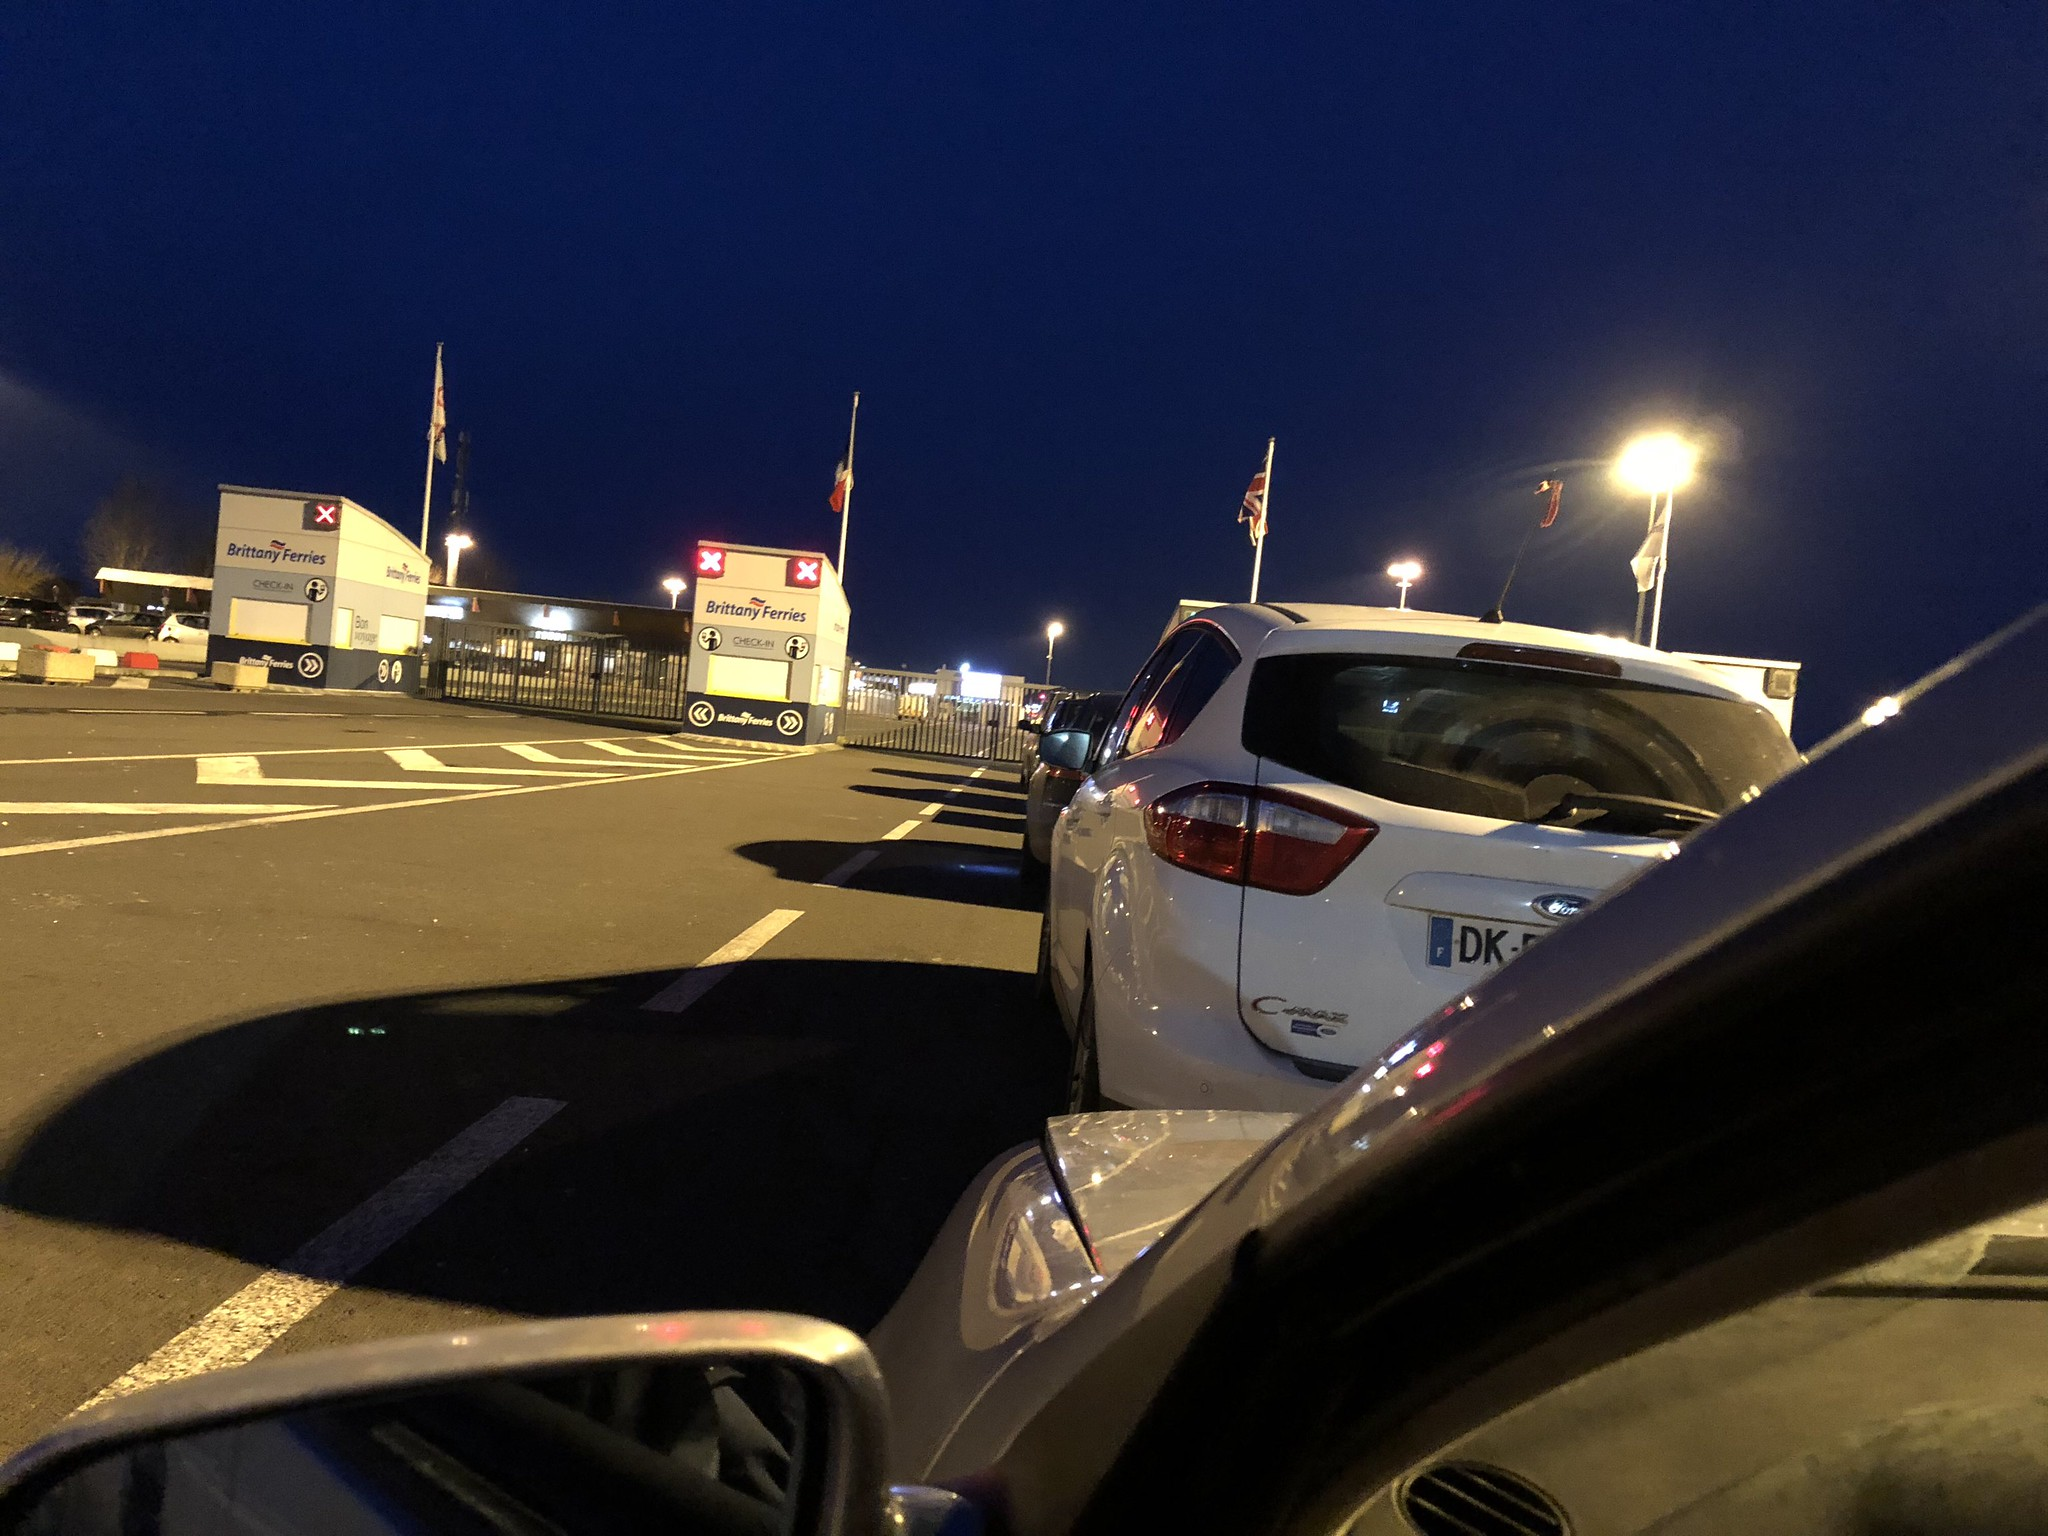 Waiting for the ferry...